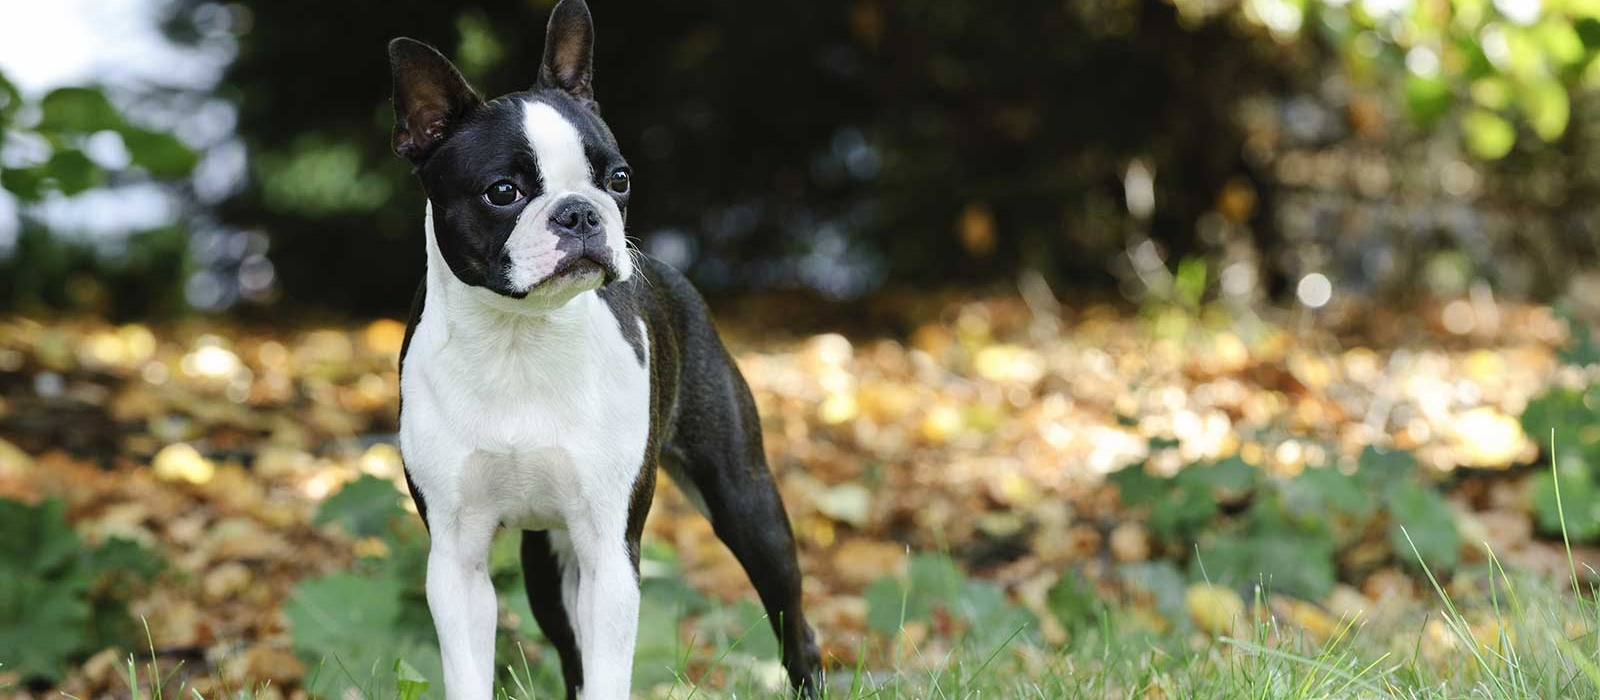 Boston Terrier Puppies For Sale | Greenfield Puppies